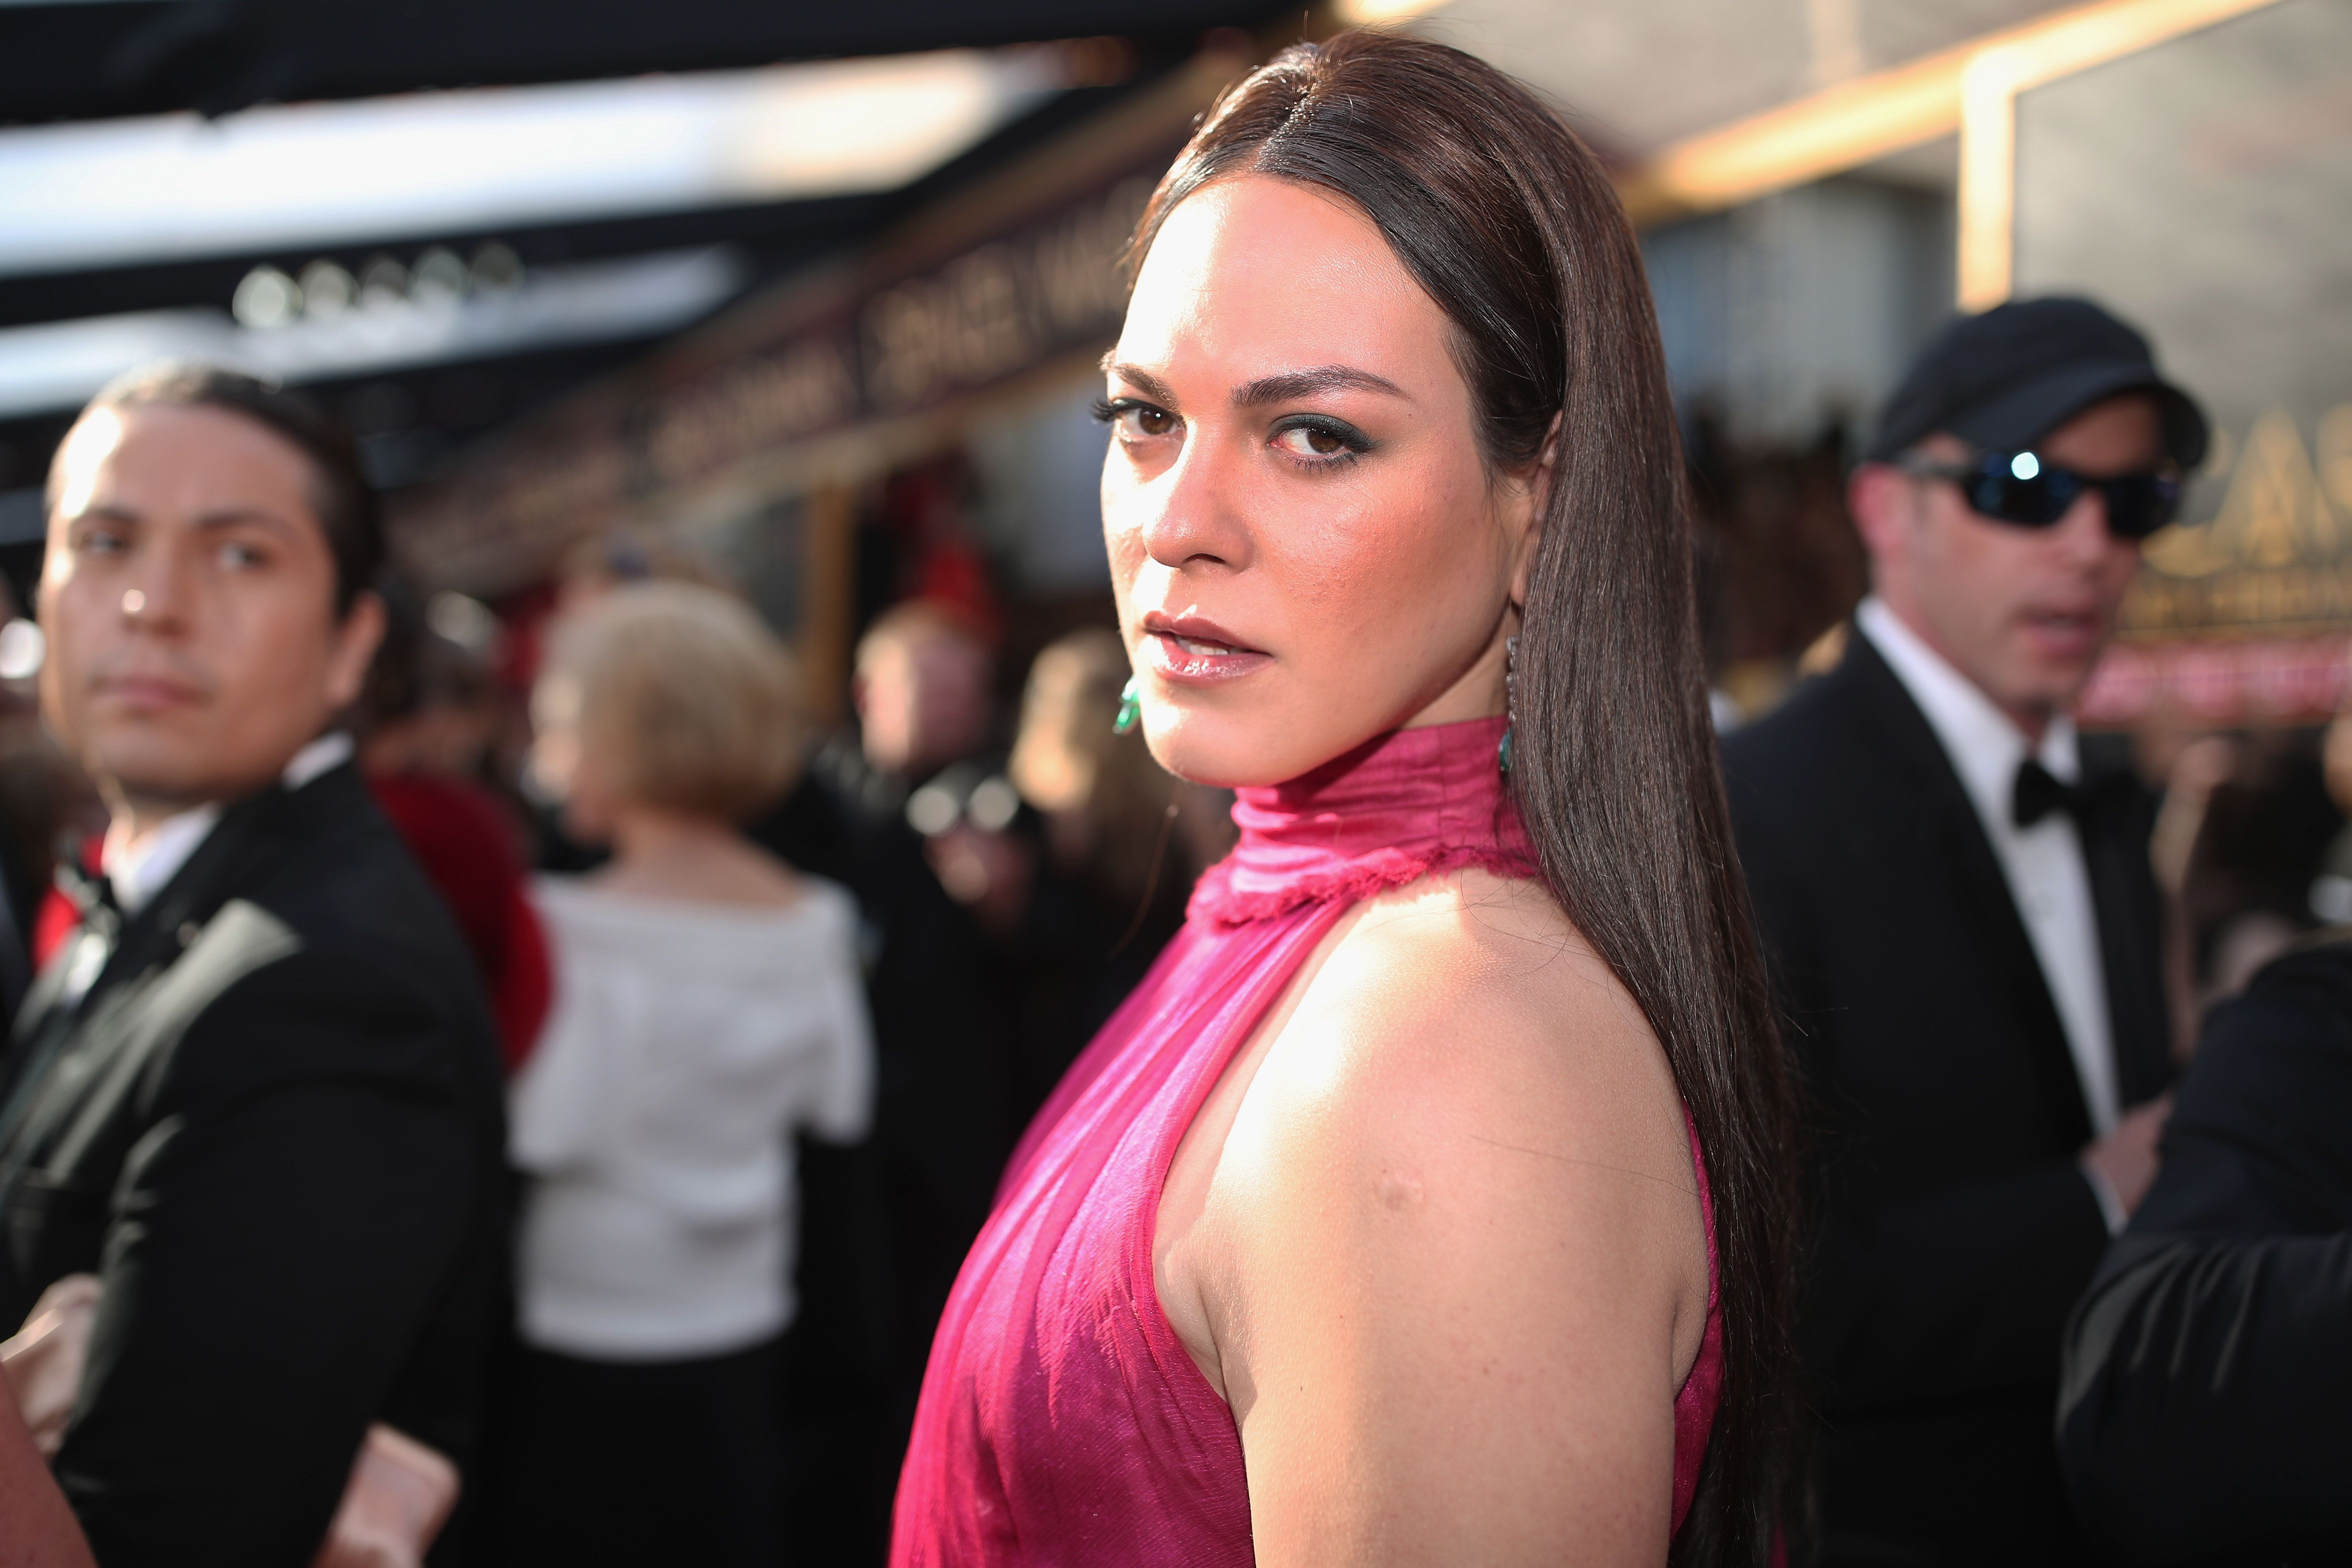 HOLLYWOOD, CA - MARCH 04:  Daniela Vega attends the 90th Annual Academy Awards at Hollywood & Highland Center on March 4, 2018 in Hollywood, California.  (Photo by Christopher Polk/Getty Images)